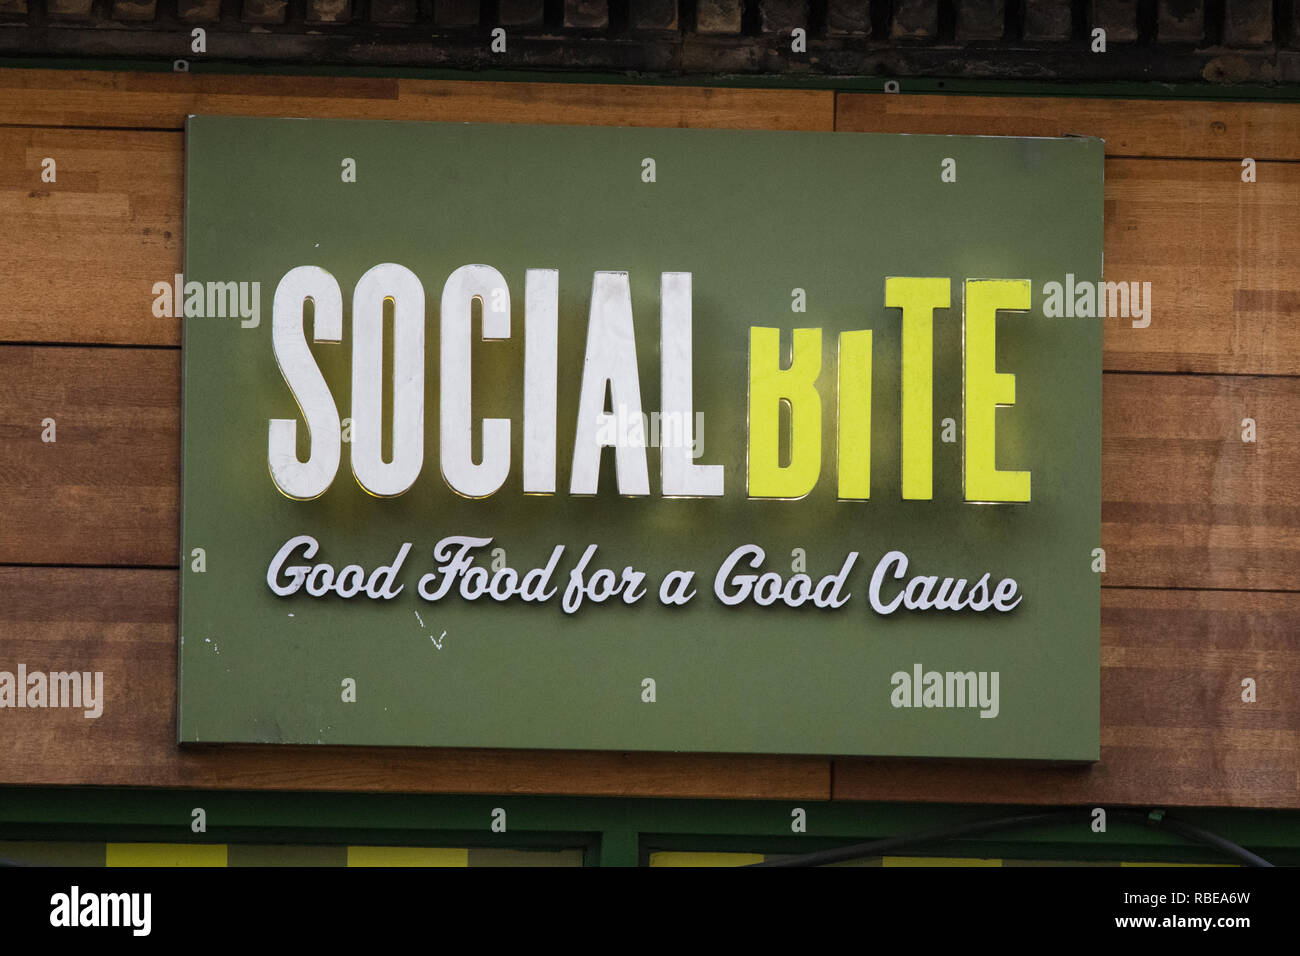 Social Bite cafe sign, Glasgow, Scotland, UK - Stock Image